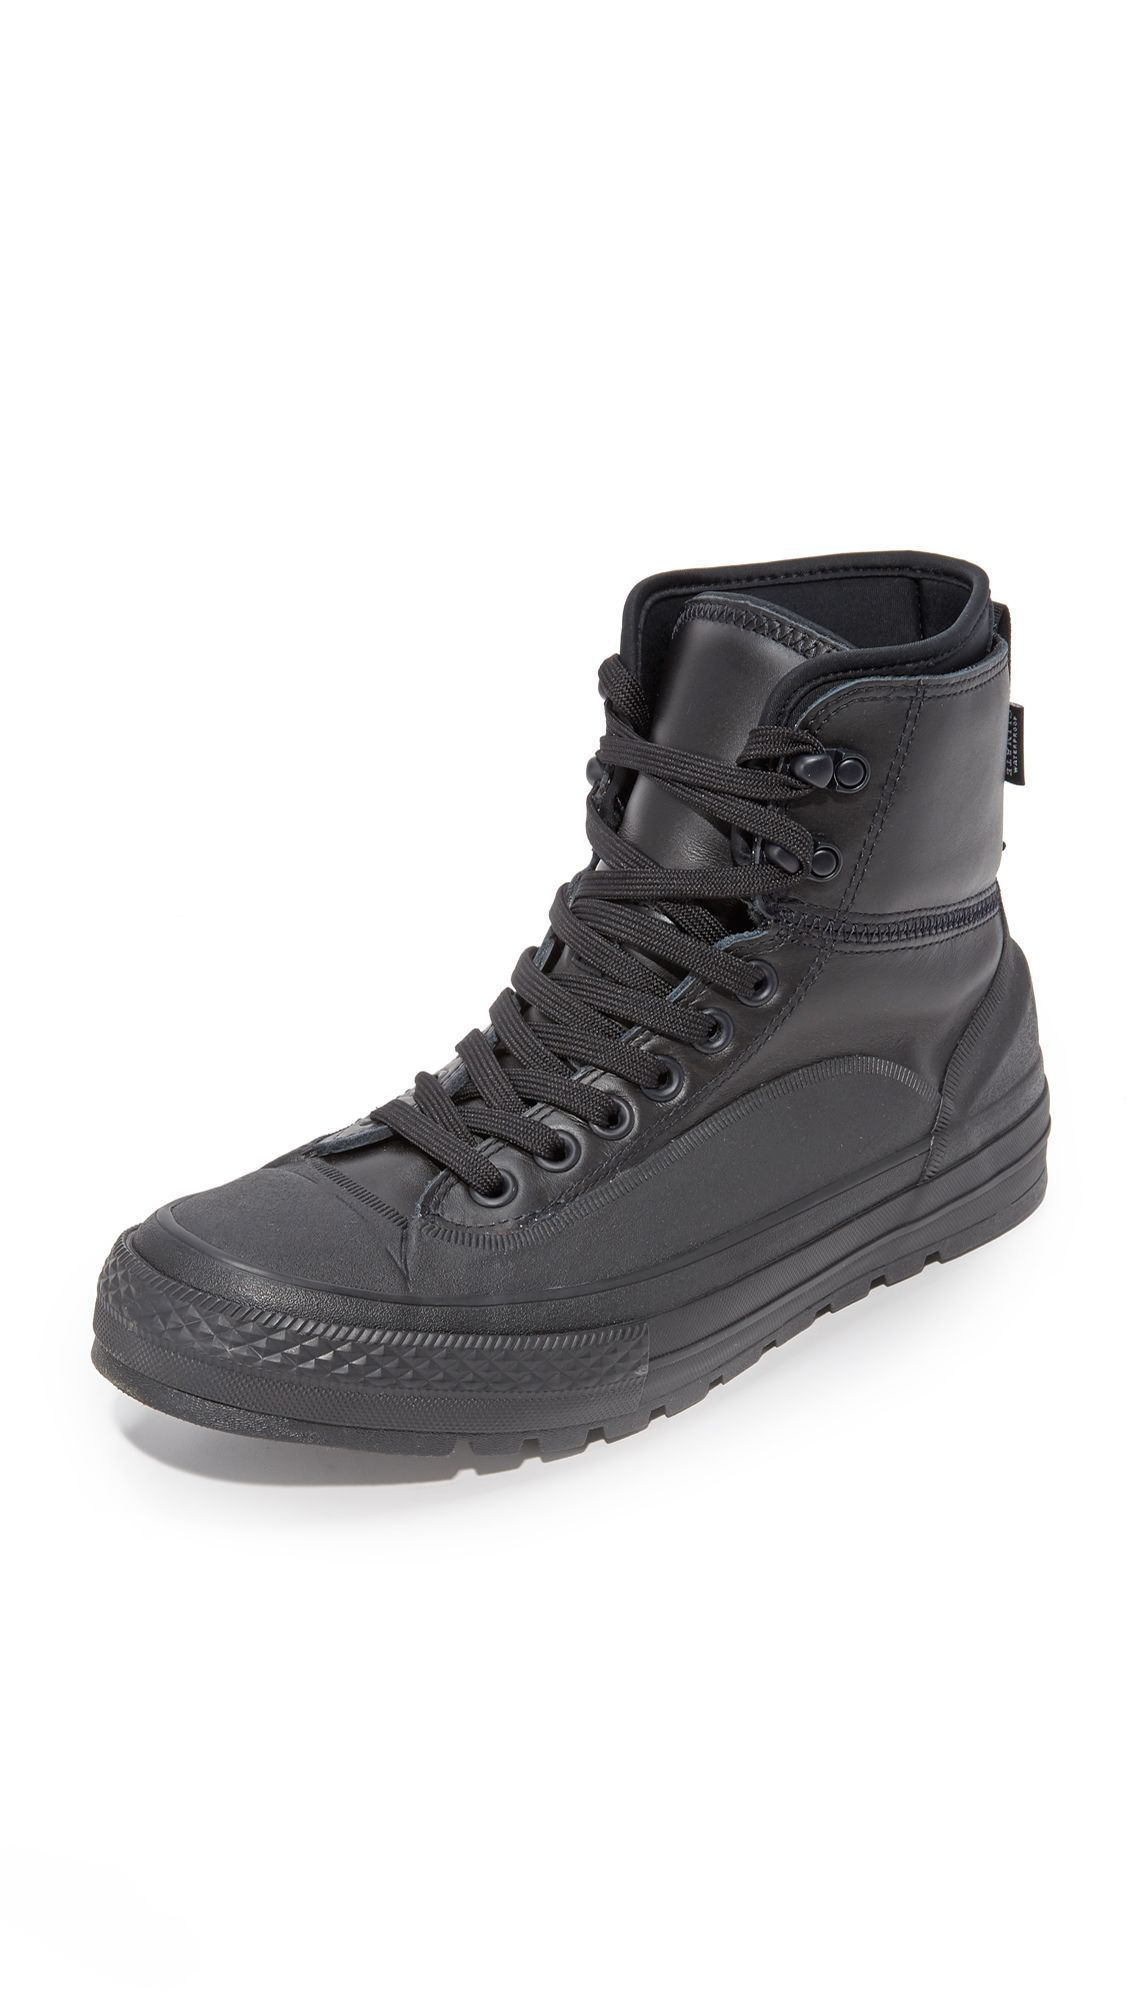 0fa10922d2e9c1 CONVERSE Chuck Taylor Waterproof All Star Tekoa Boots.  converse  shoes   boots